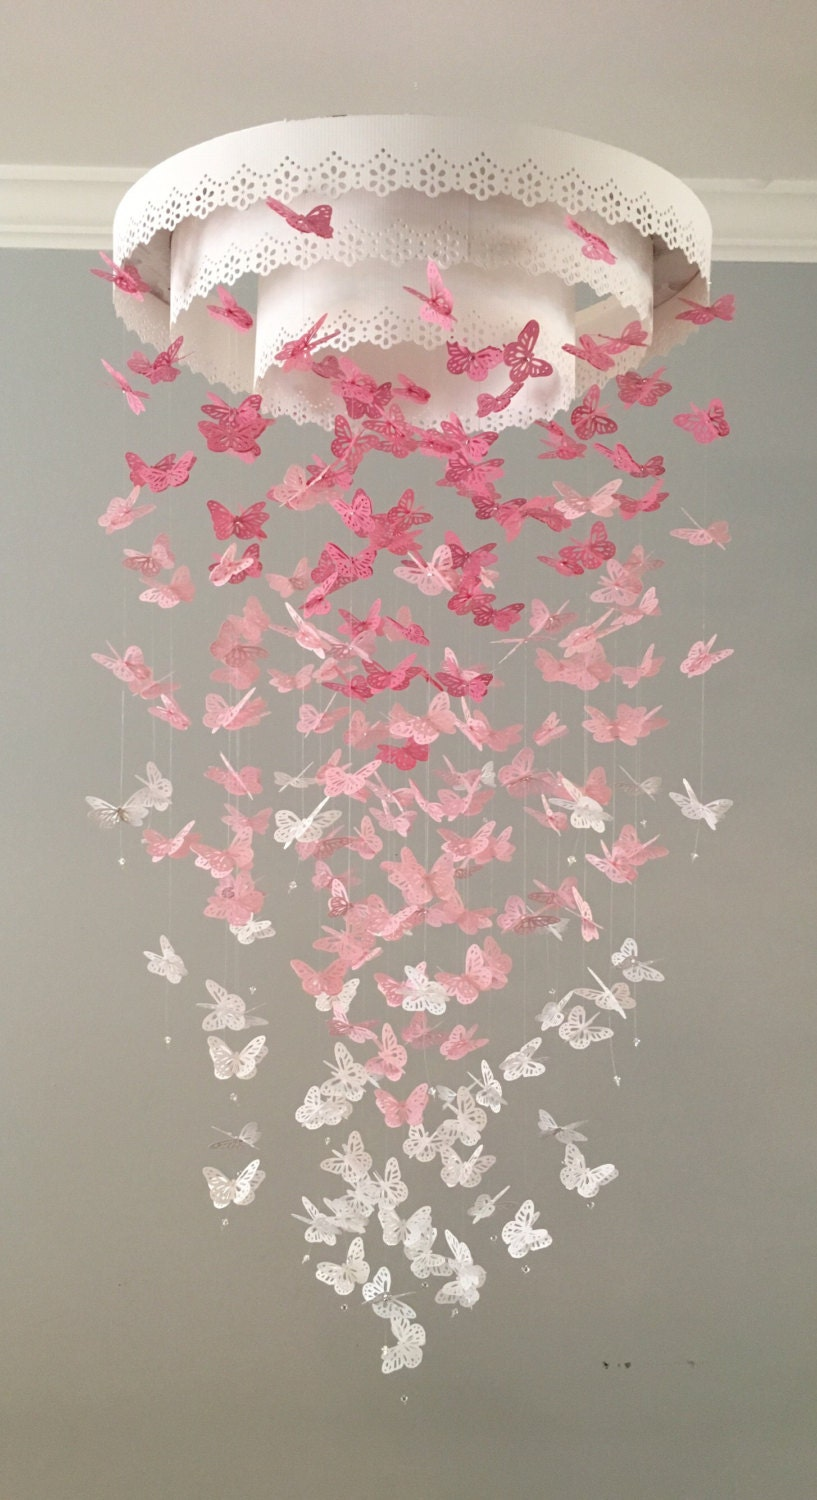 The original paper lace chandelier monarch butterfly mobile zoom aloadofball Image collections